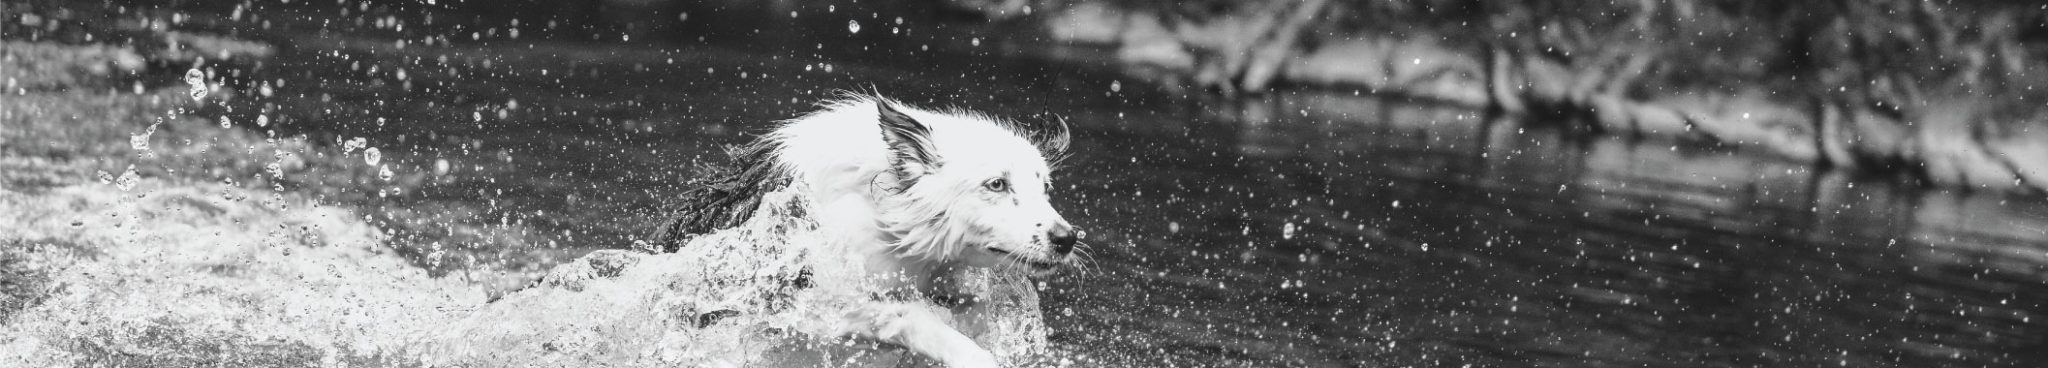 ORIJEN Fit & Trim Dog Food - White Collie running and splashing through the water - Envy from Pennsylvania